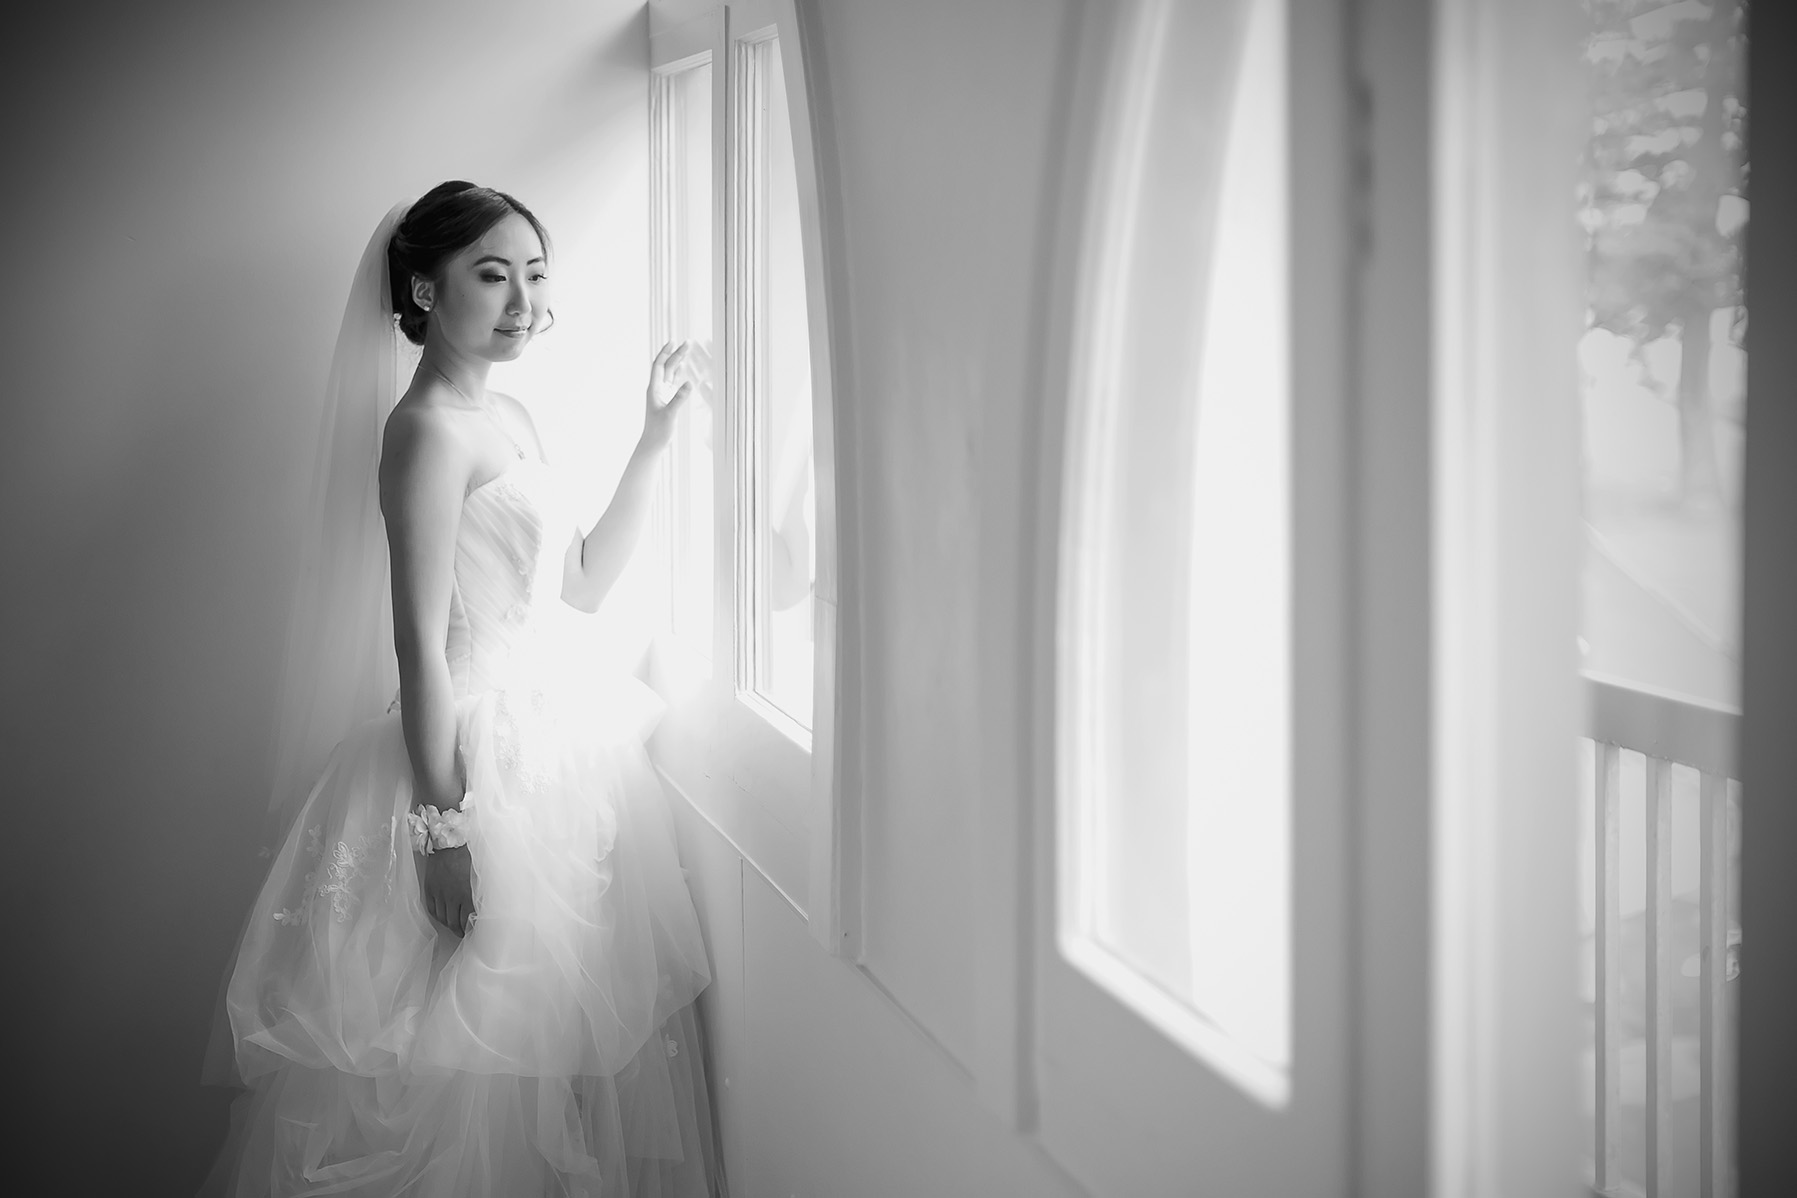 Black and White Film Style Bridal Preparation photo by Window 7